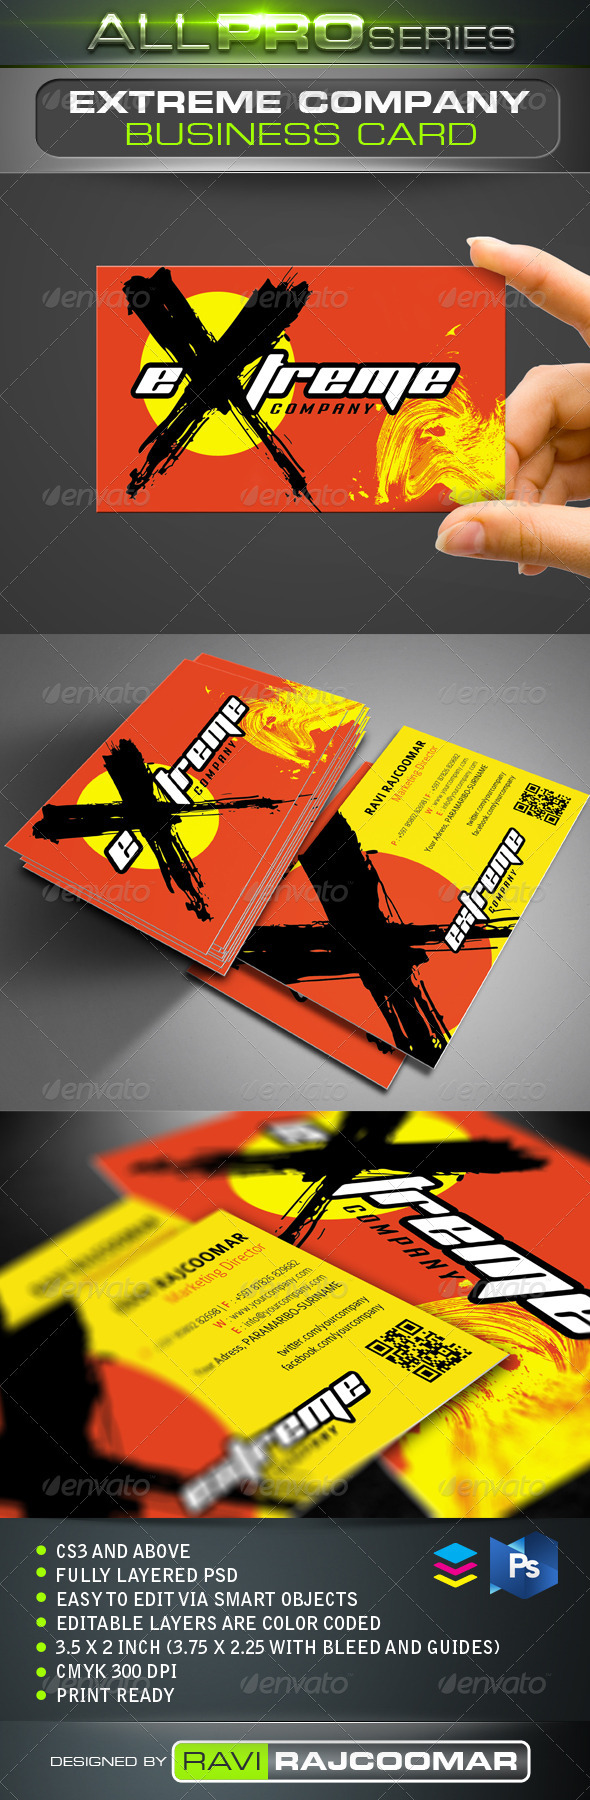 Extreme Company Business Card - Creative Business Cards